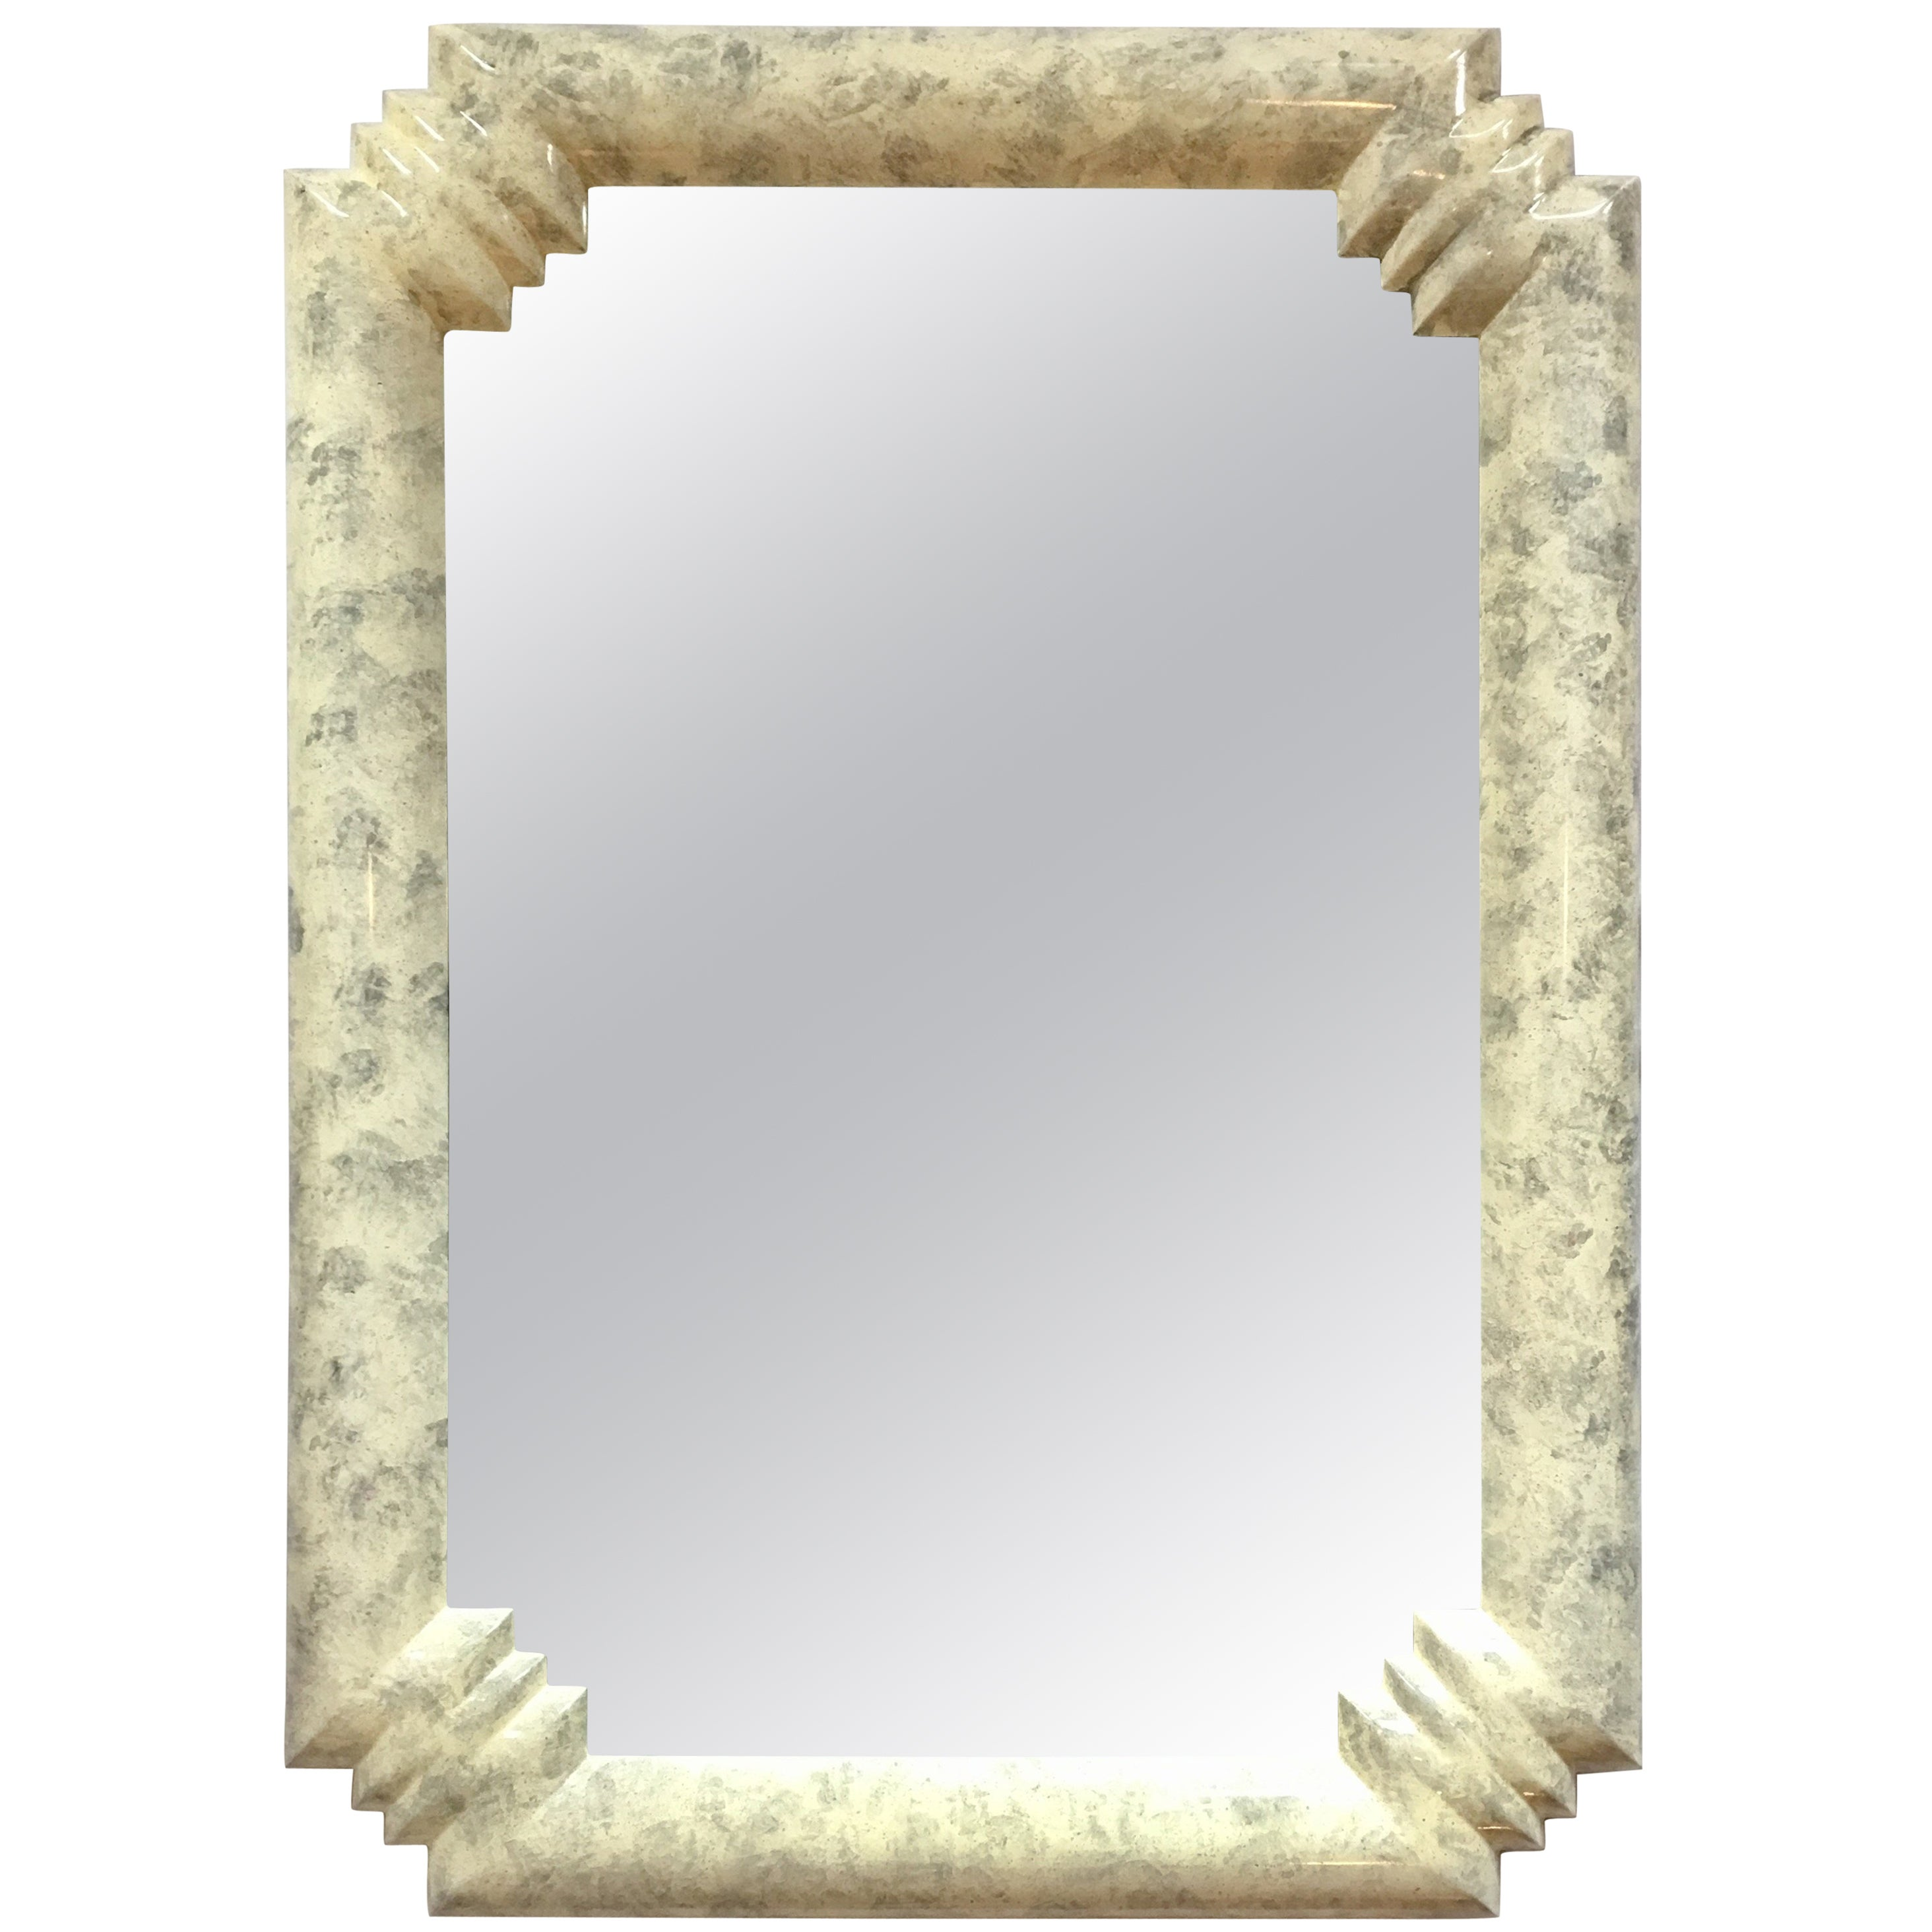 Art Deco Style Lacquered Bullnose Wall Mirror